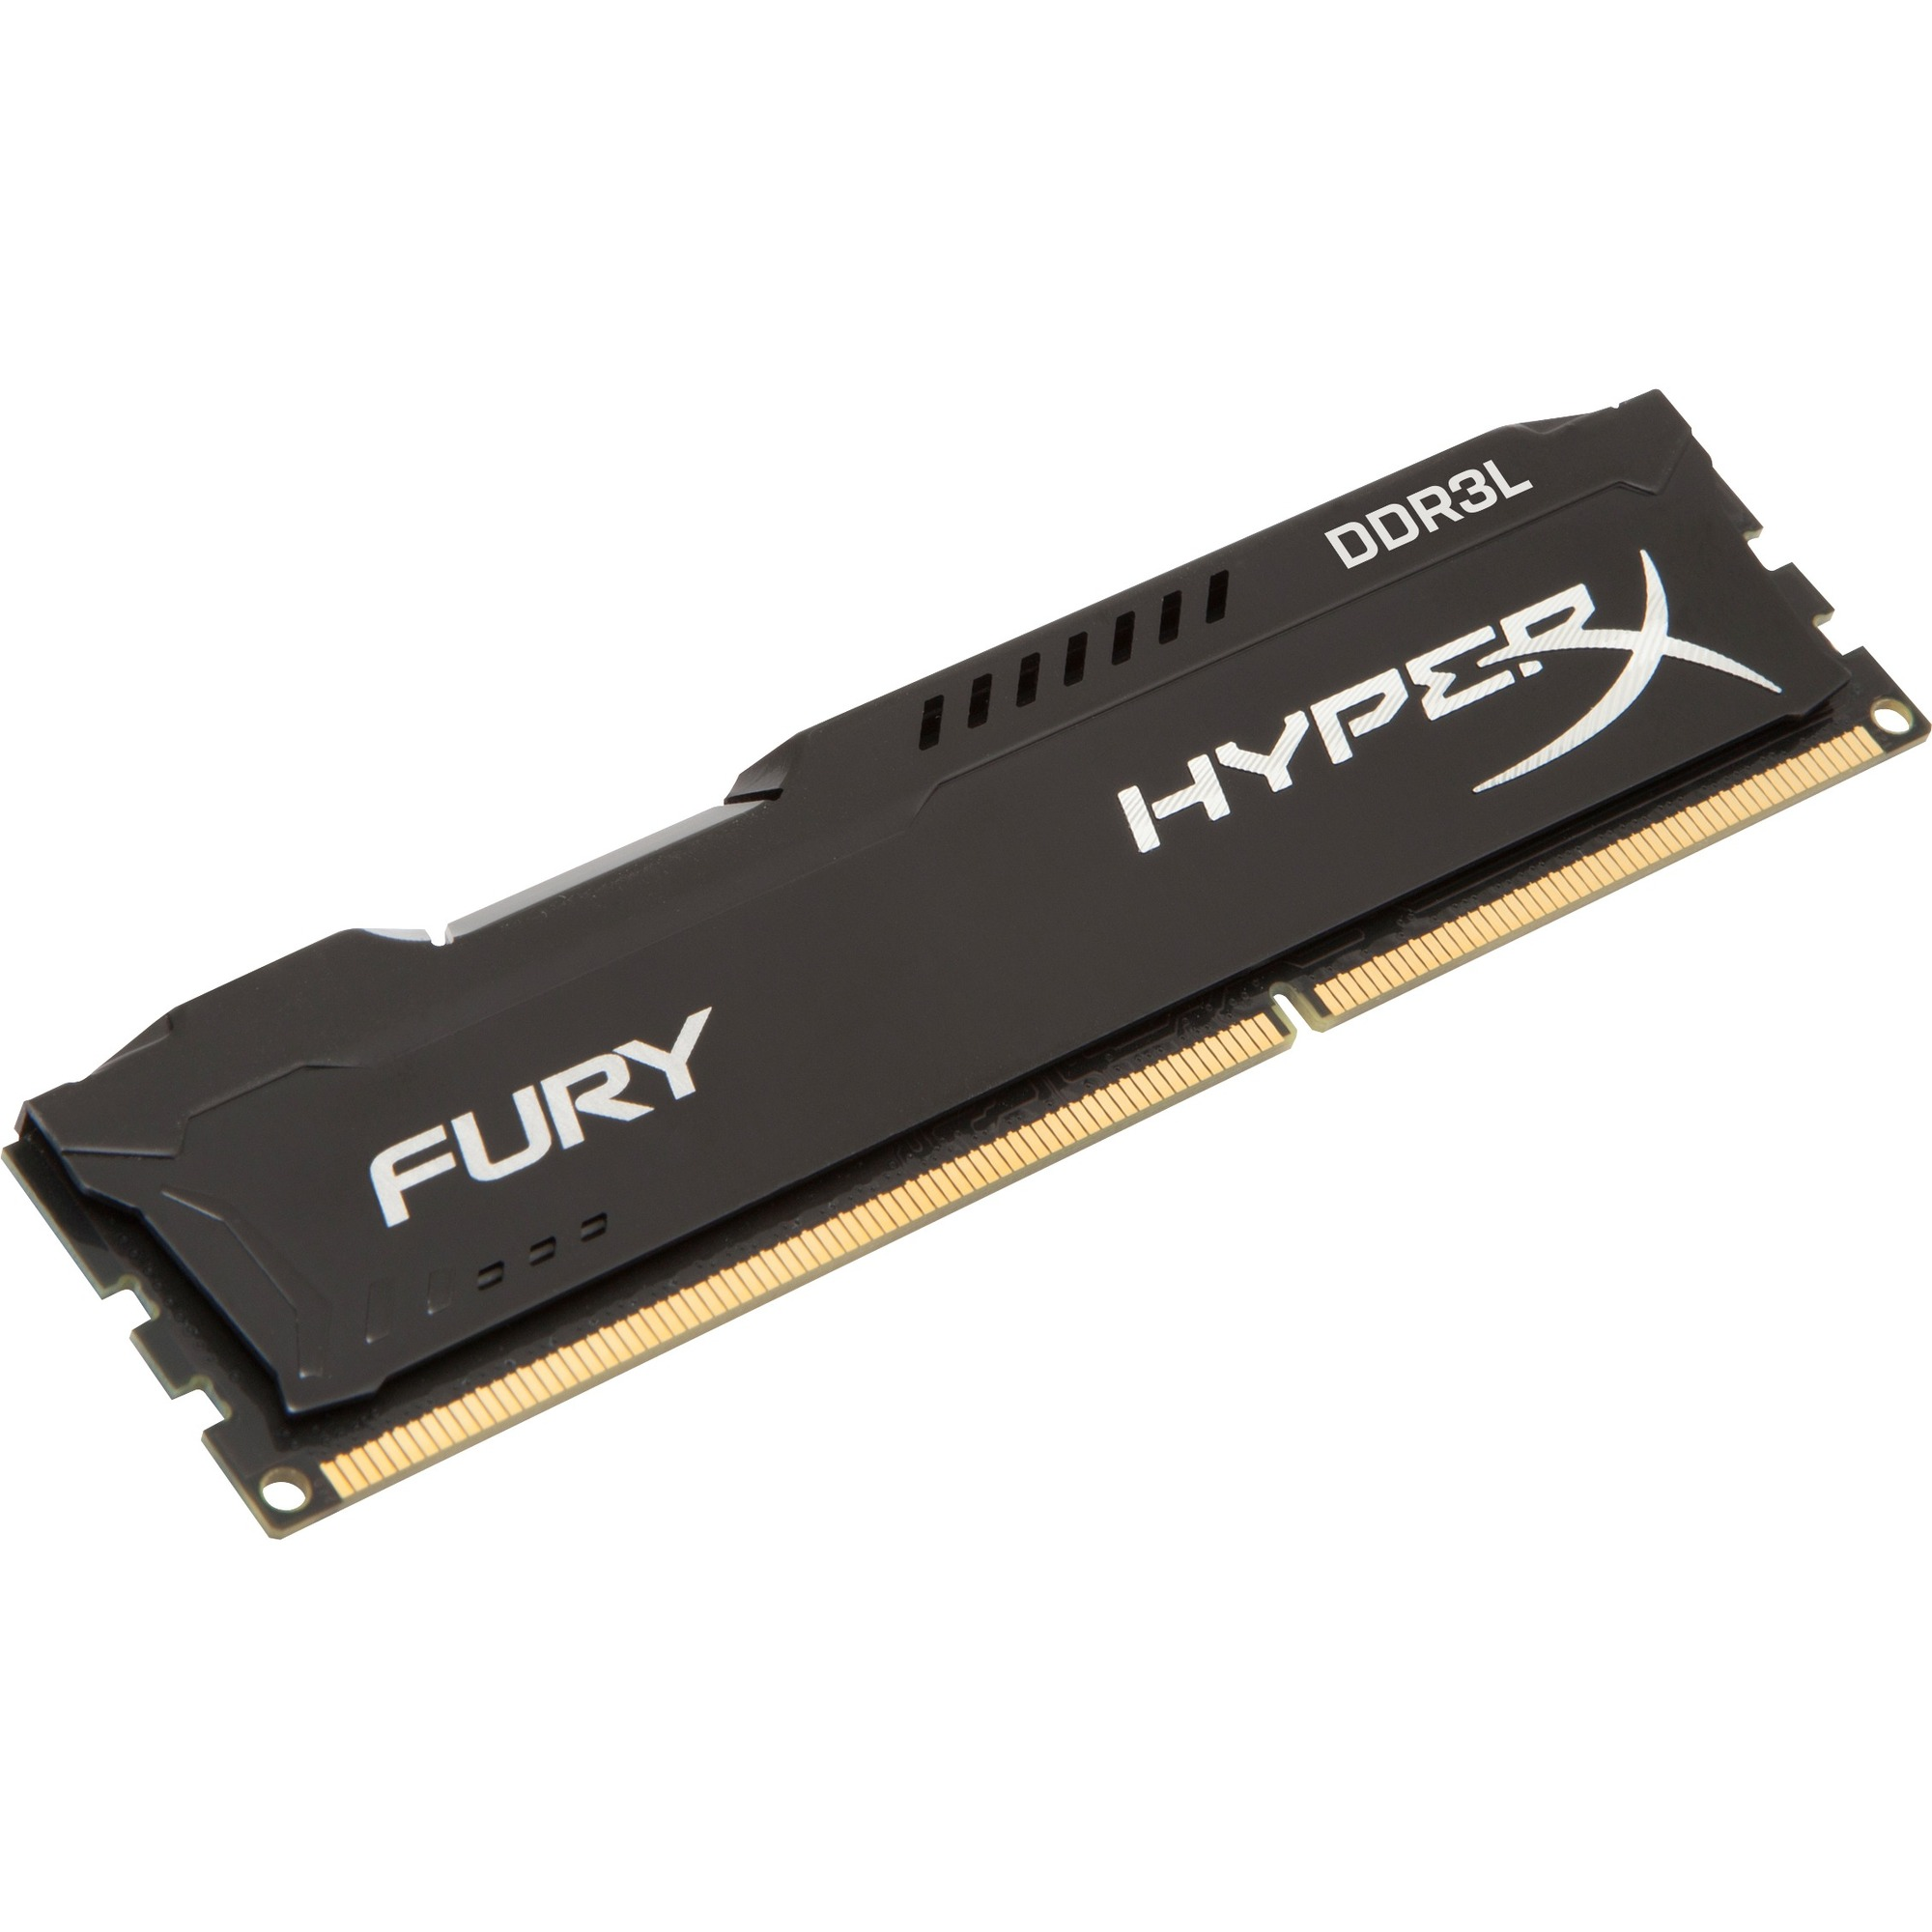 Kingston HyperX Fury RAM Module - 4 GB 1 x 4 GB - DDR3L SDRAM - 1866 MHz - 1.35 V